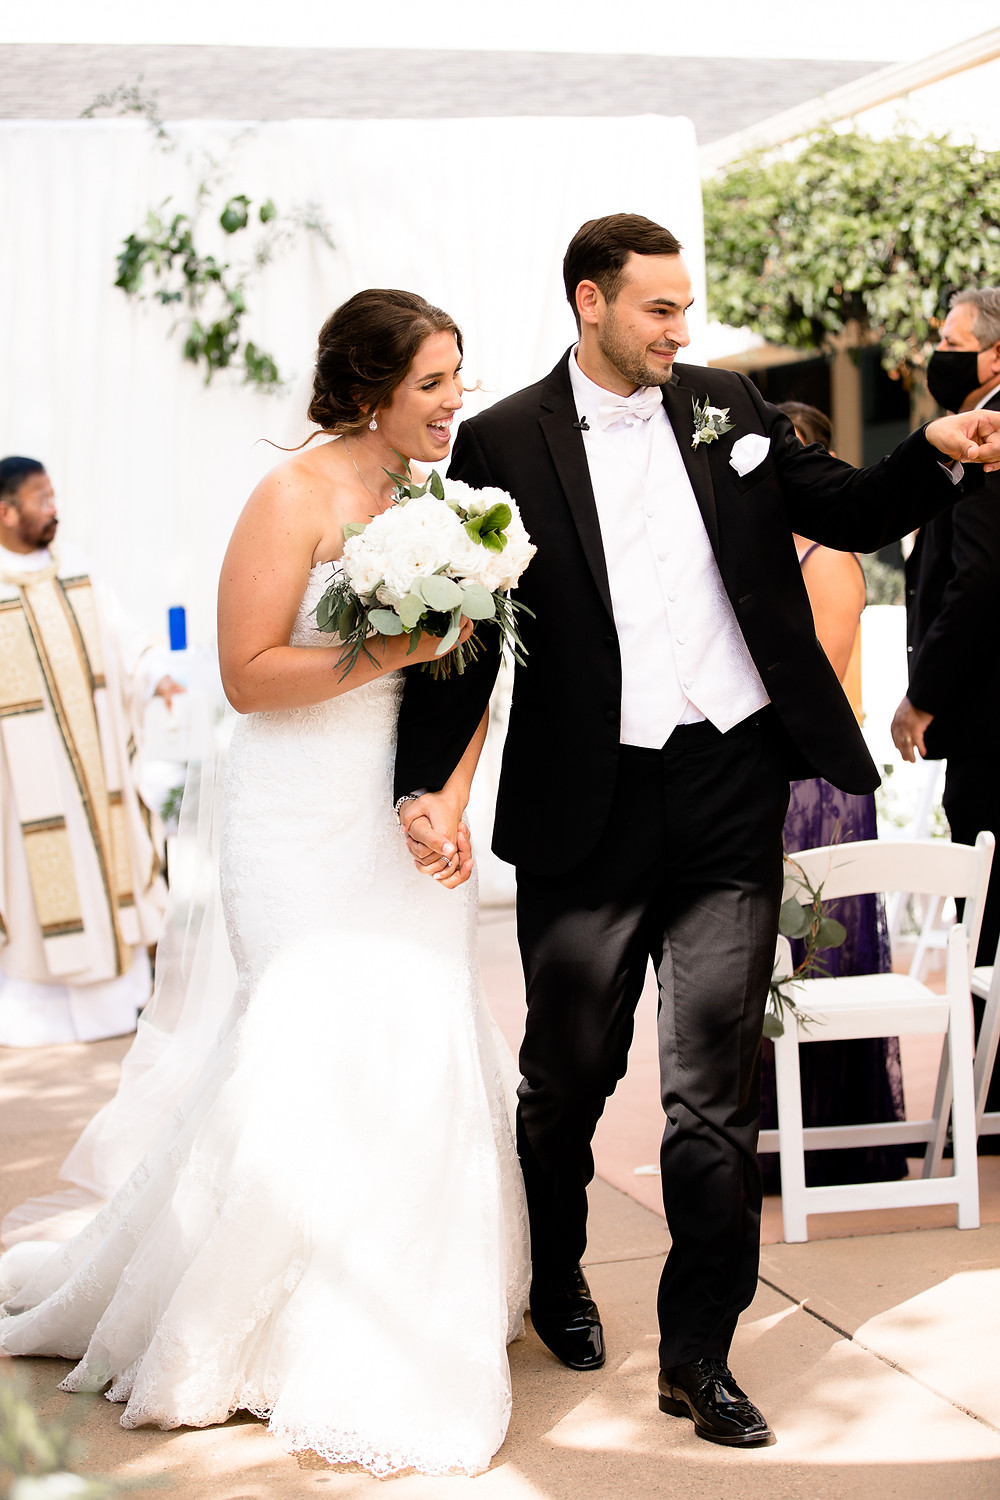 bride and groom walking down the aisle smiling after their wedding ceremony